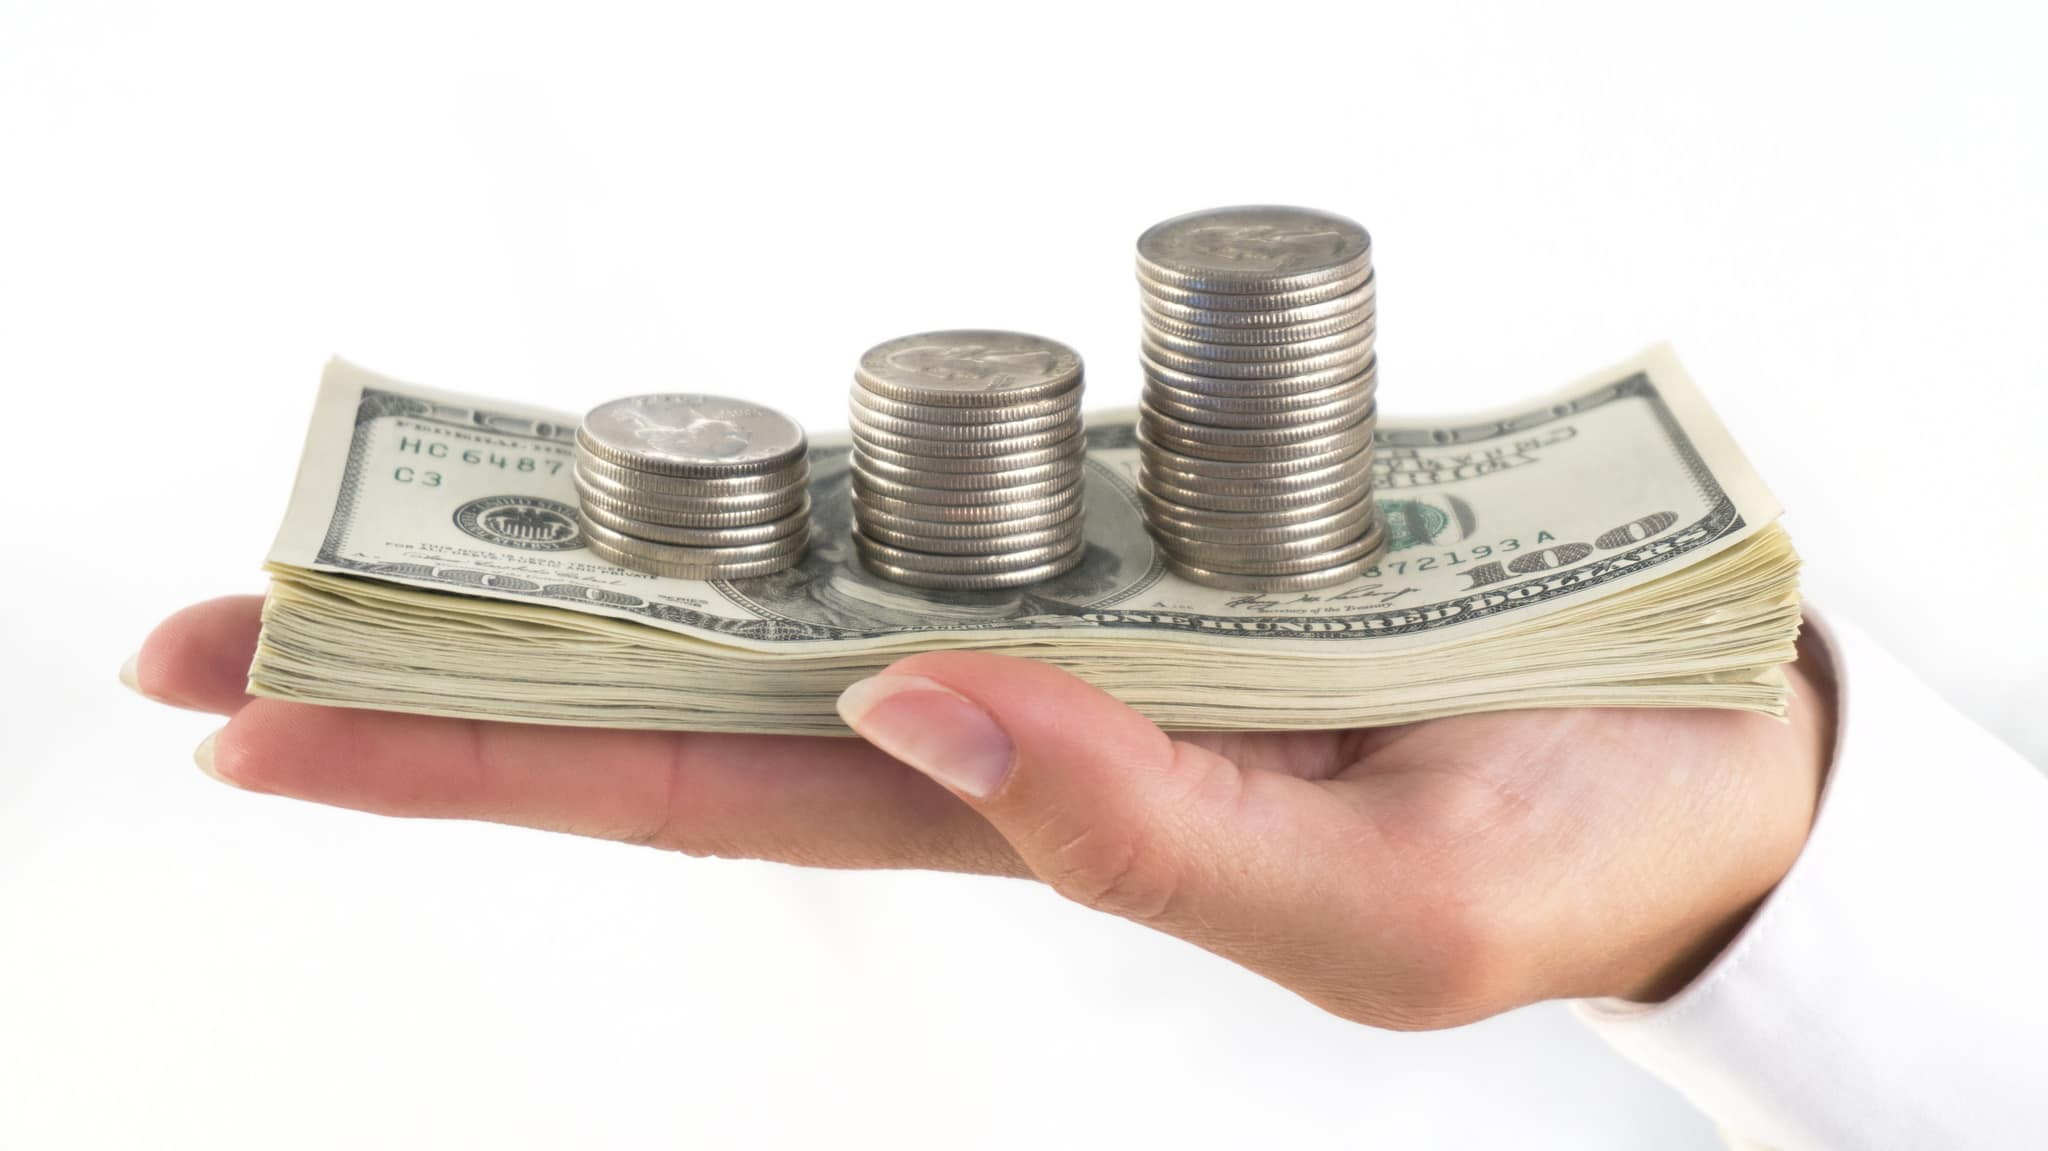 Funding a Living Trust in Phoenix & Scottsdale - palm holding stack of dollar bills and stacks of coins